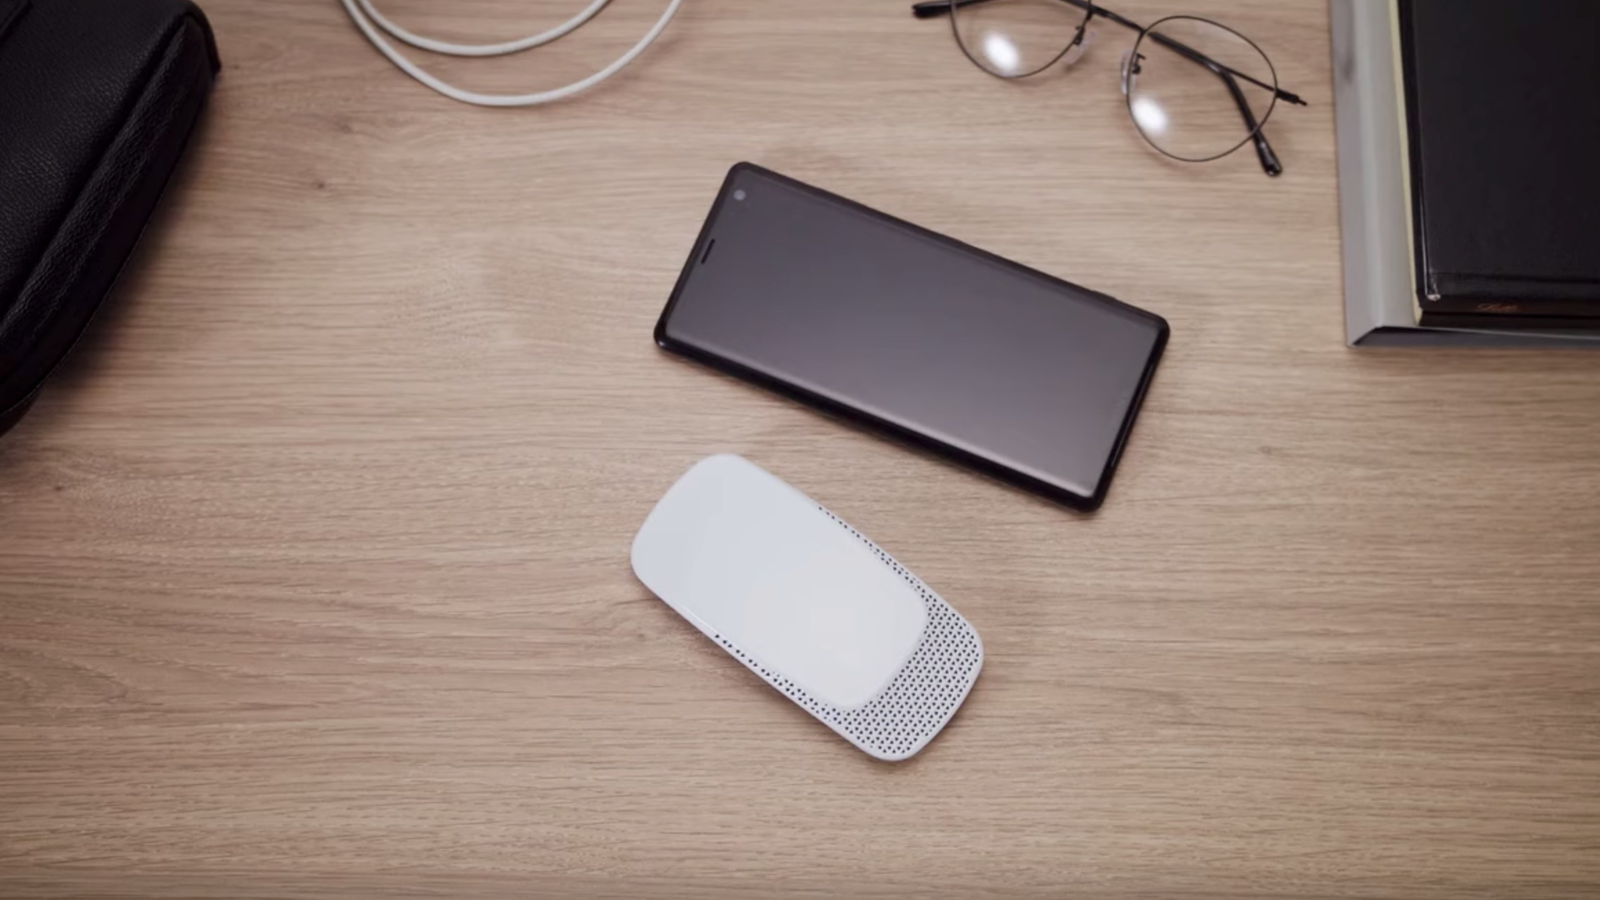 Sony's Wearable Air Conditioner Should Be Ready for Next Year's Heat Wave